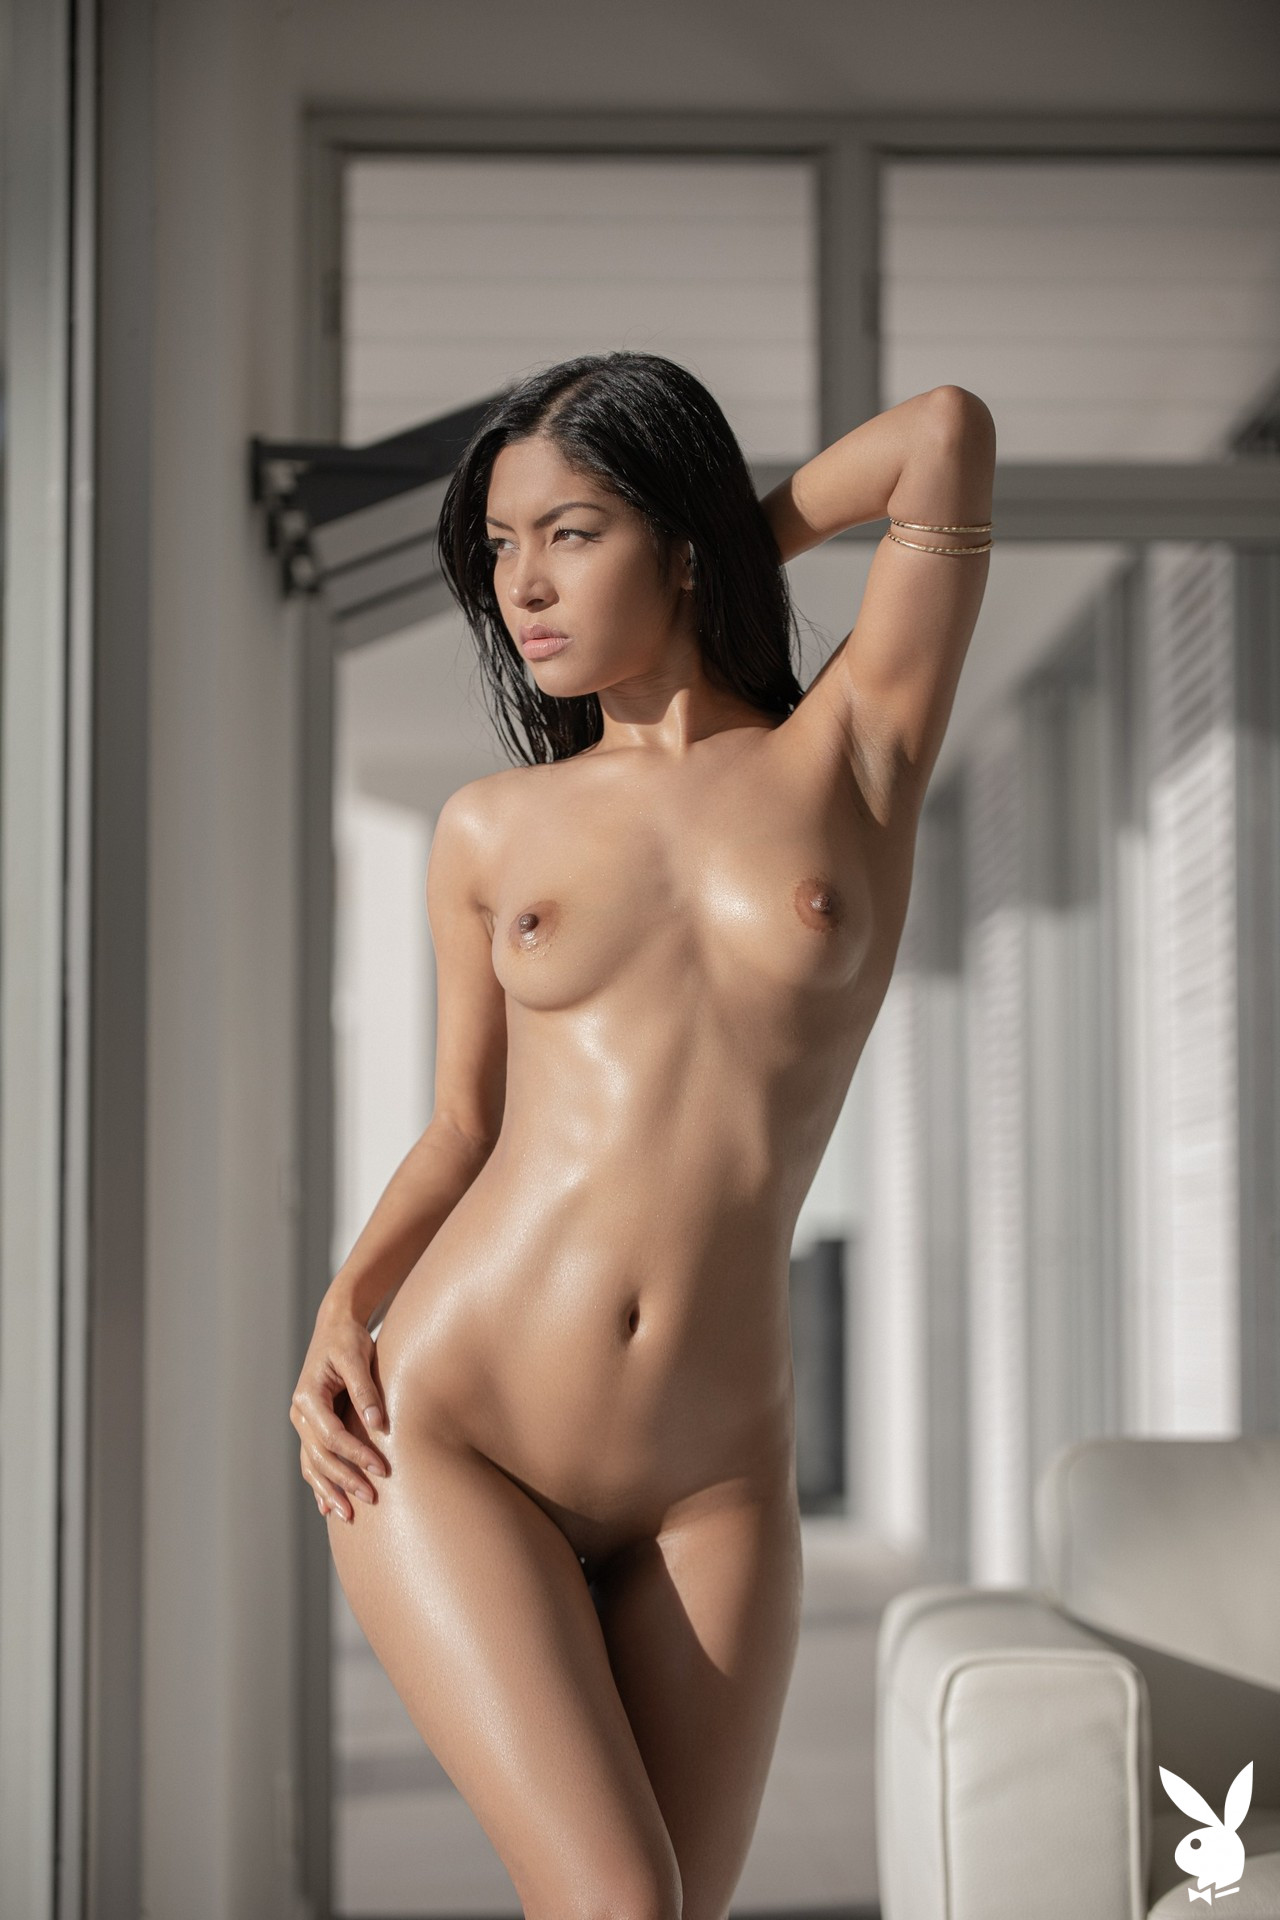 Chloe Rose In Exquisite View Playboy Plus (16)